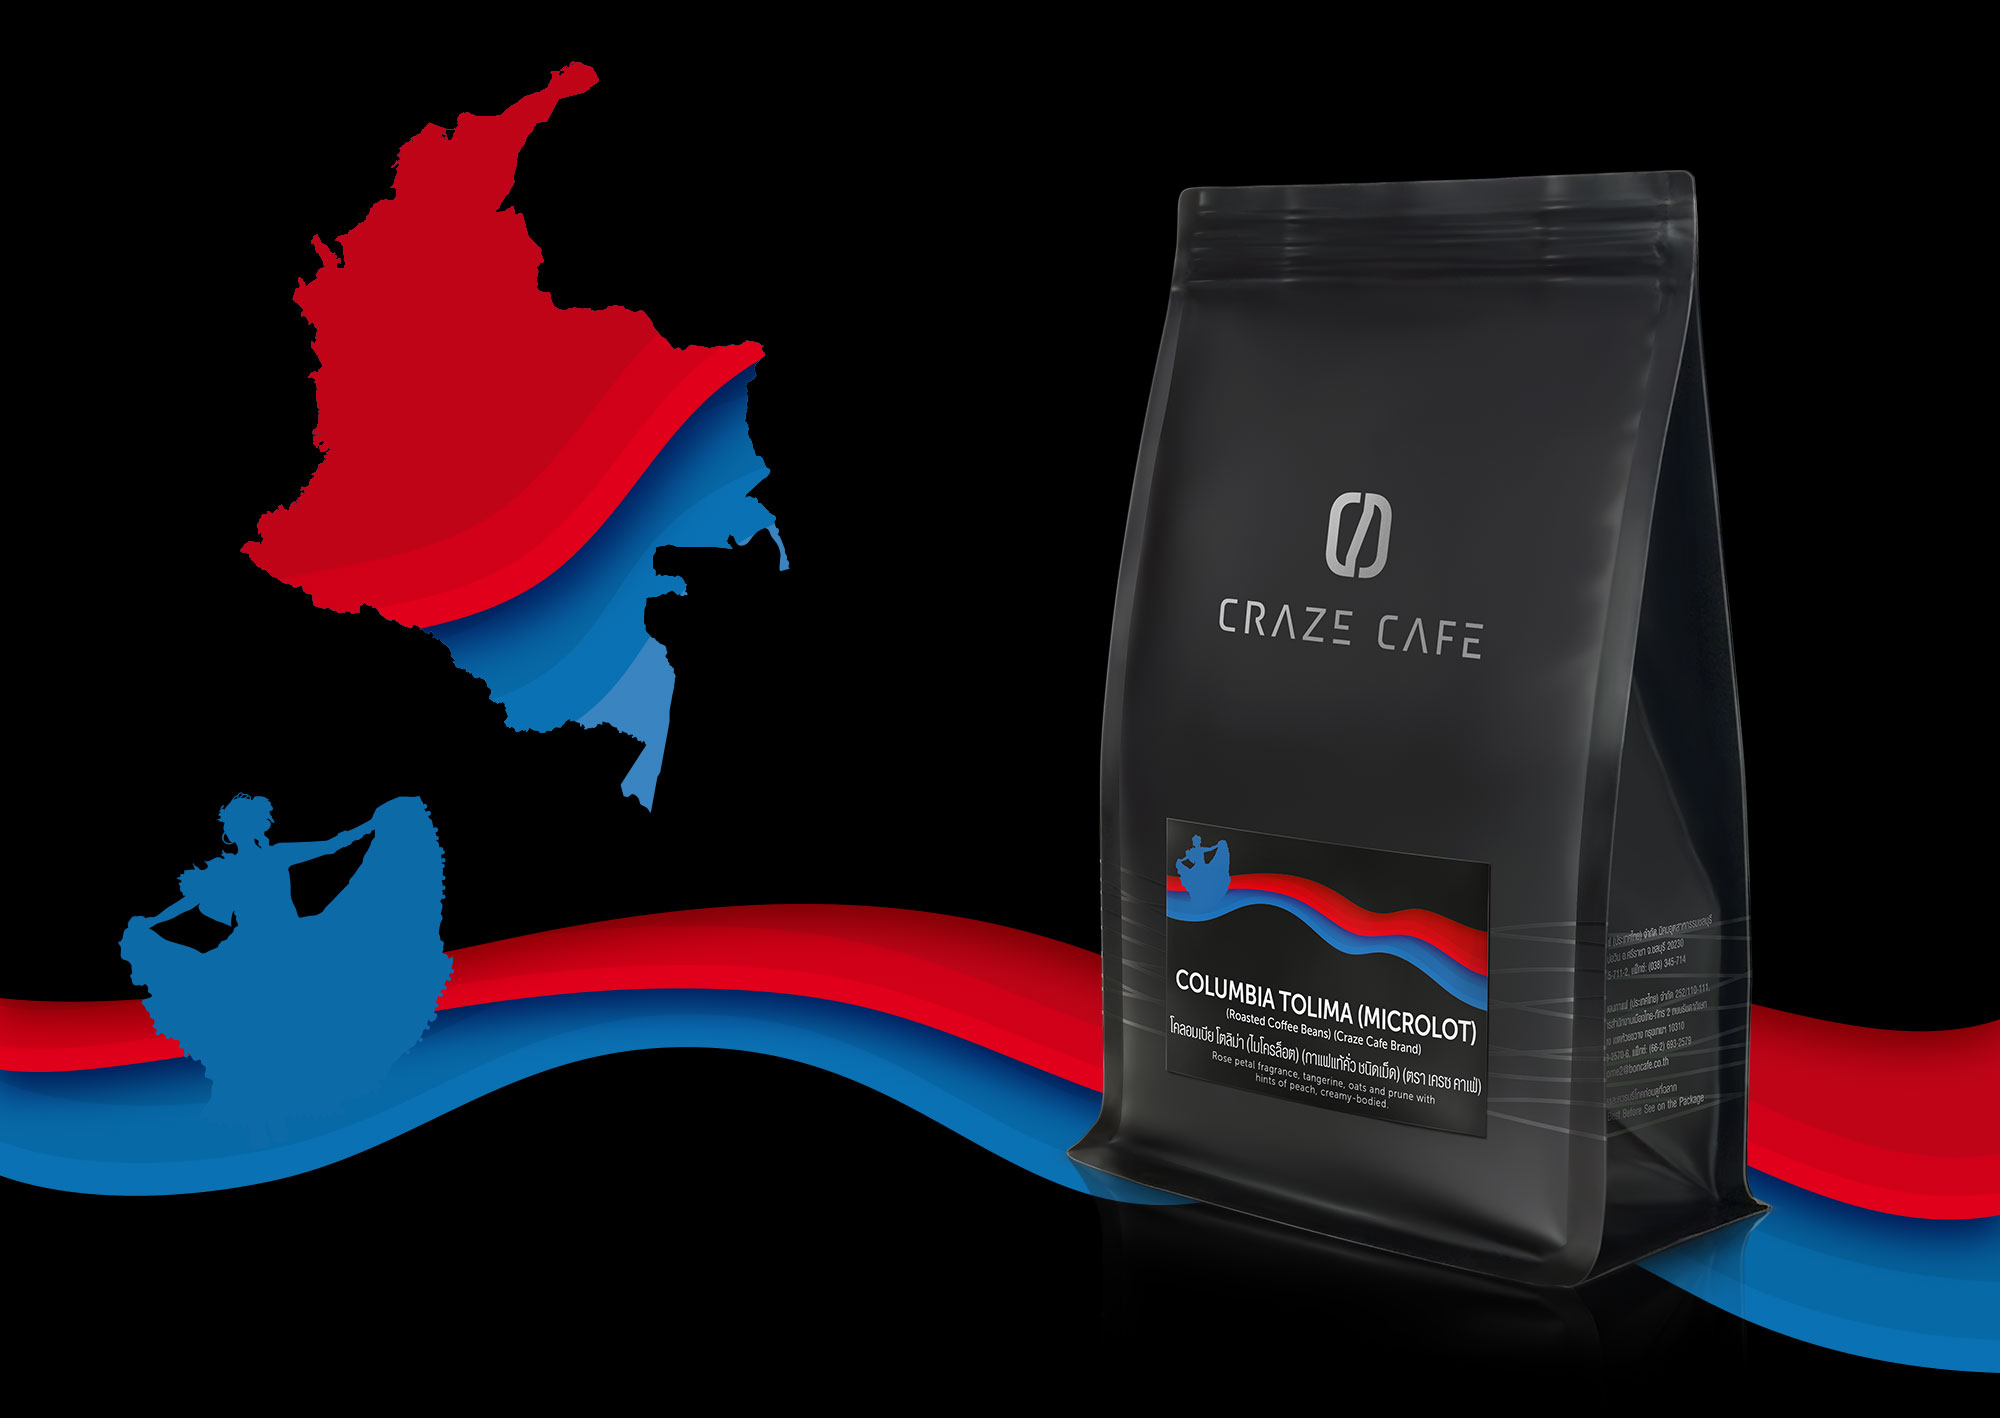 Craze Cafe Colombian Coffee Packaging